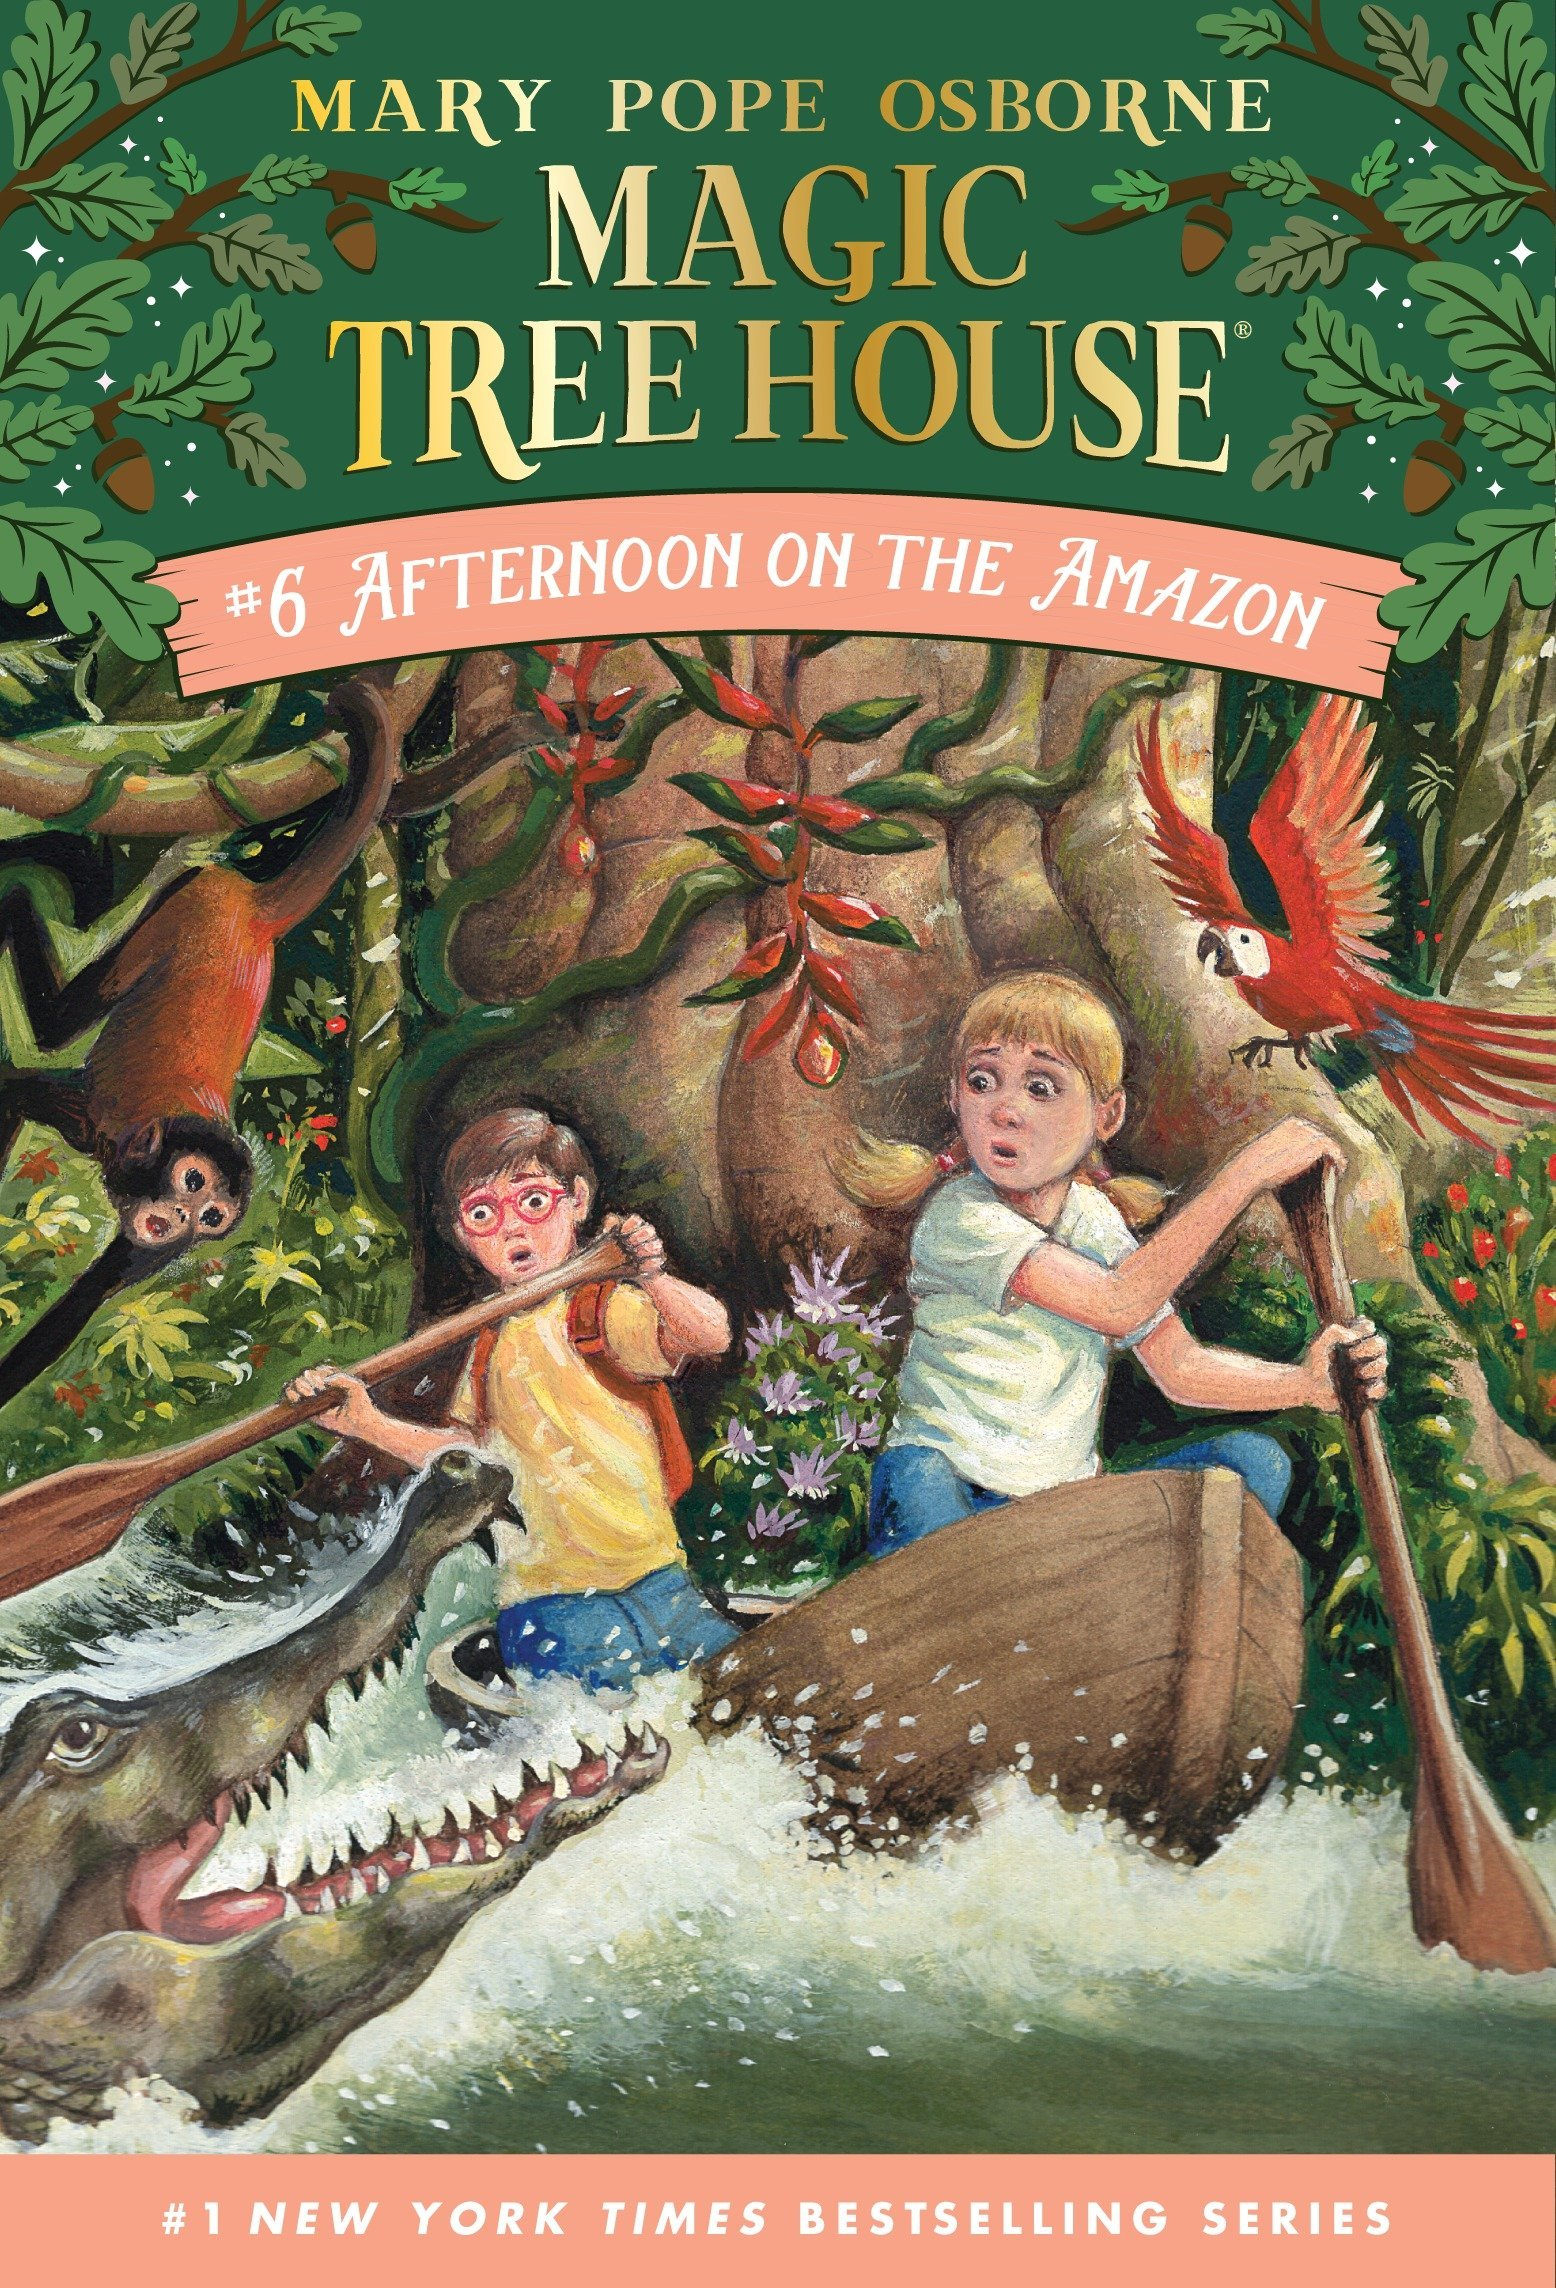 what age is appropriate for magic tree house books